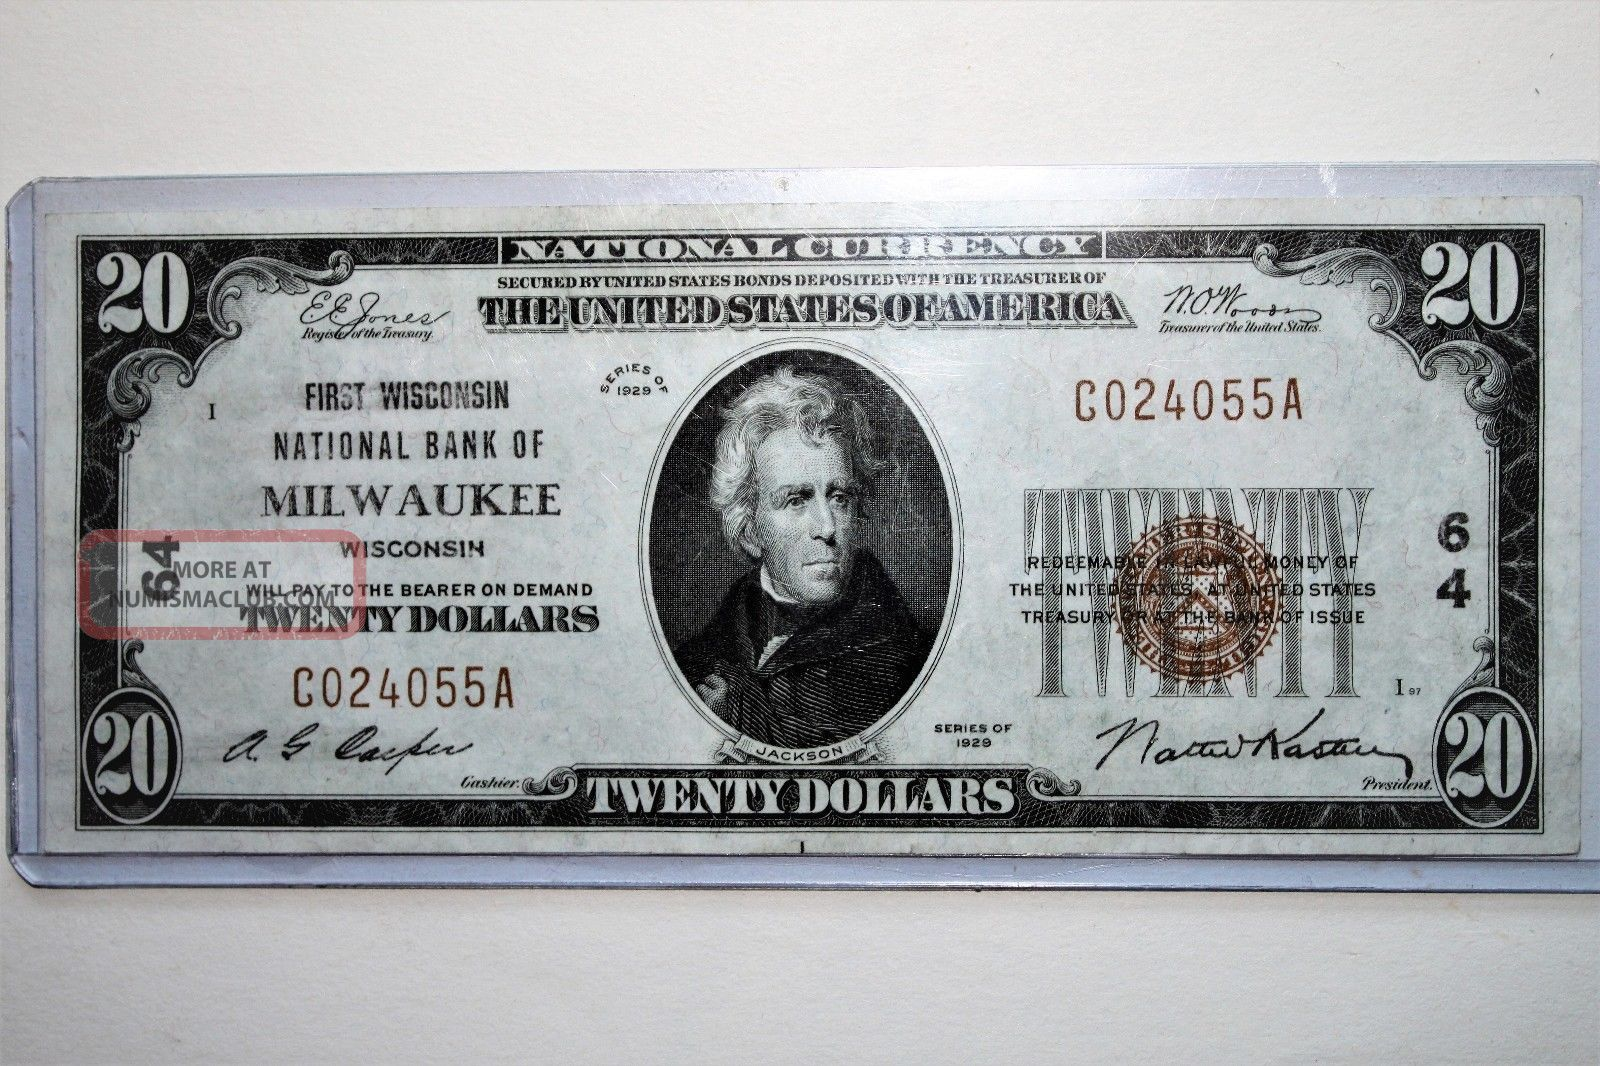 1929 Fr 1802 - 1$20 First Wisconsin National Bank Of Milwaukee National Bank Note. Small Size Notes photo